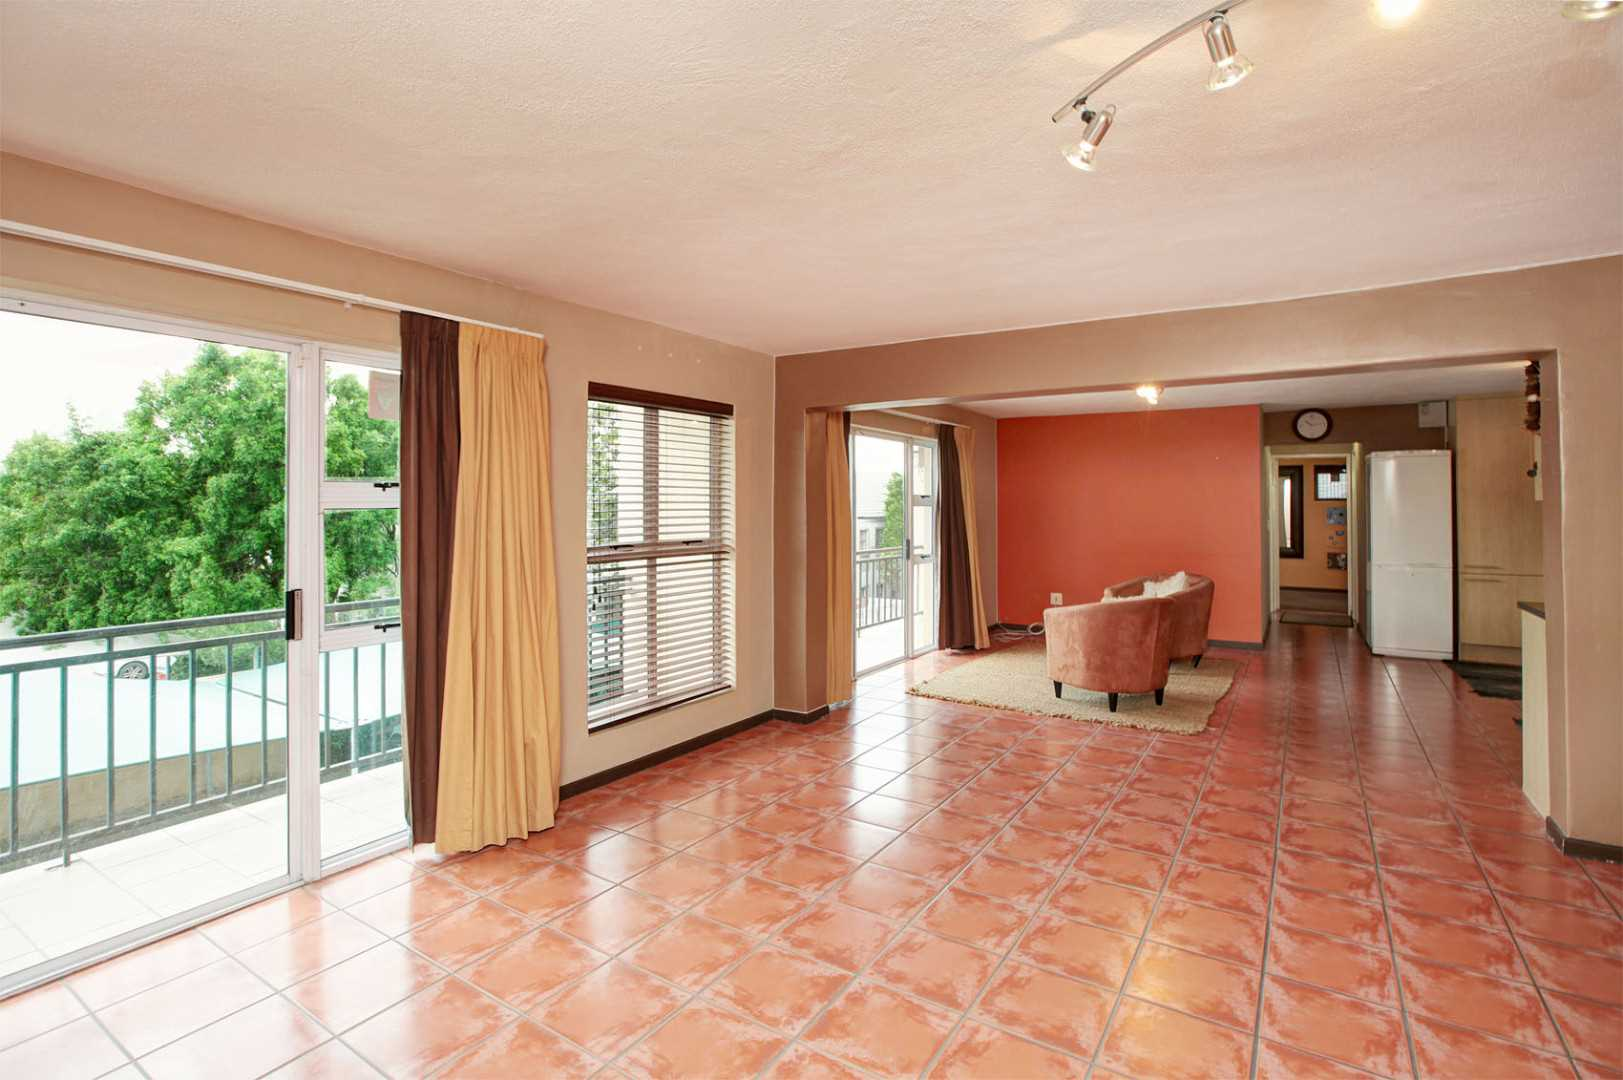 Incredible 102m² Apartment with garage & 2 parking bays